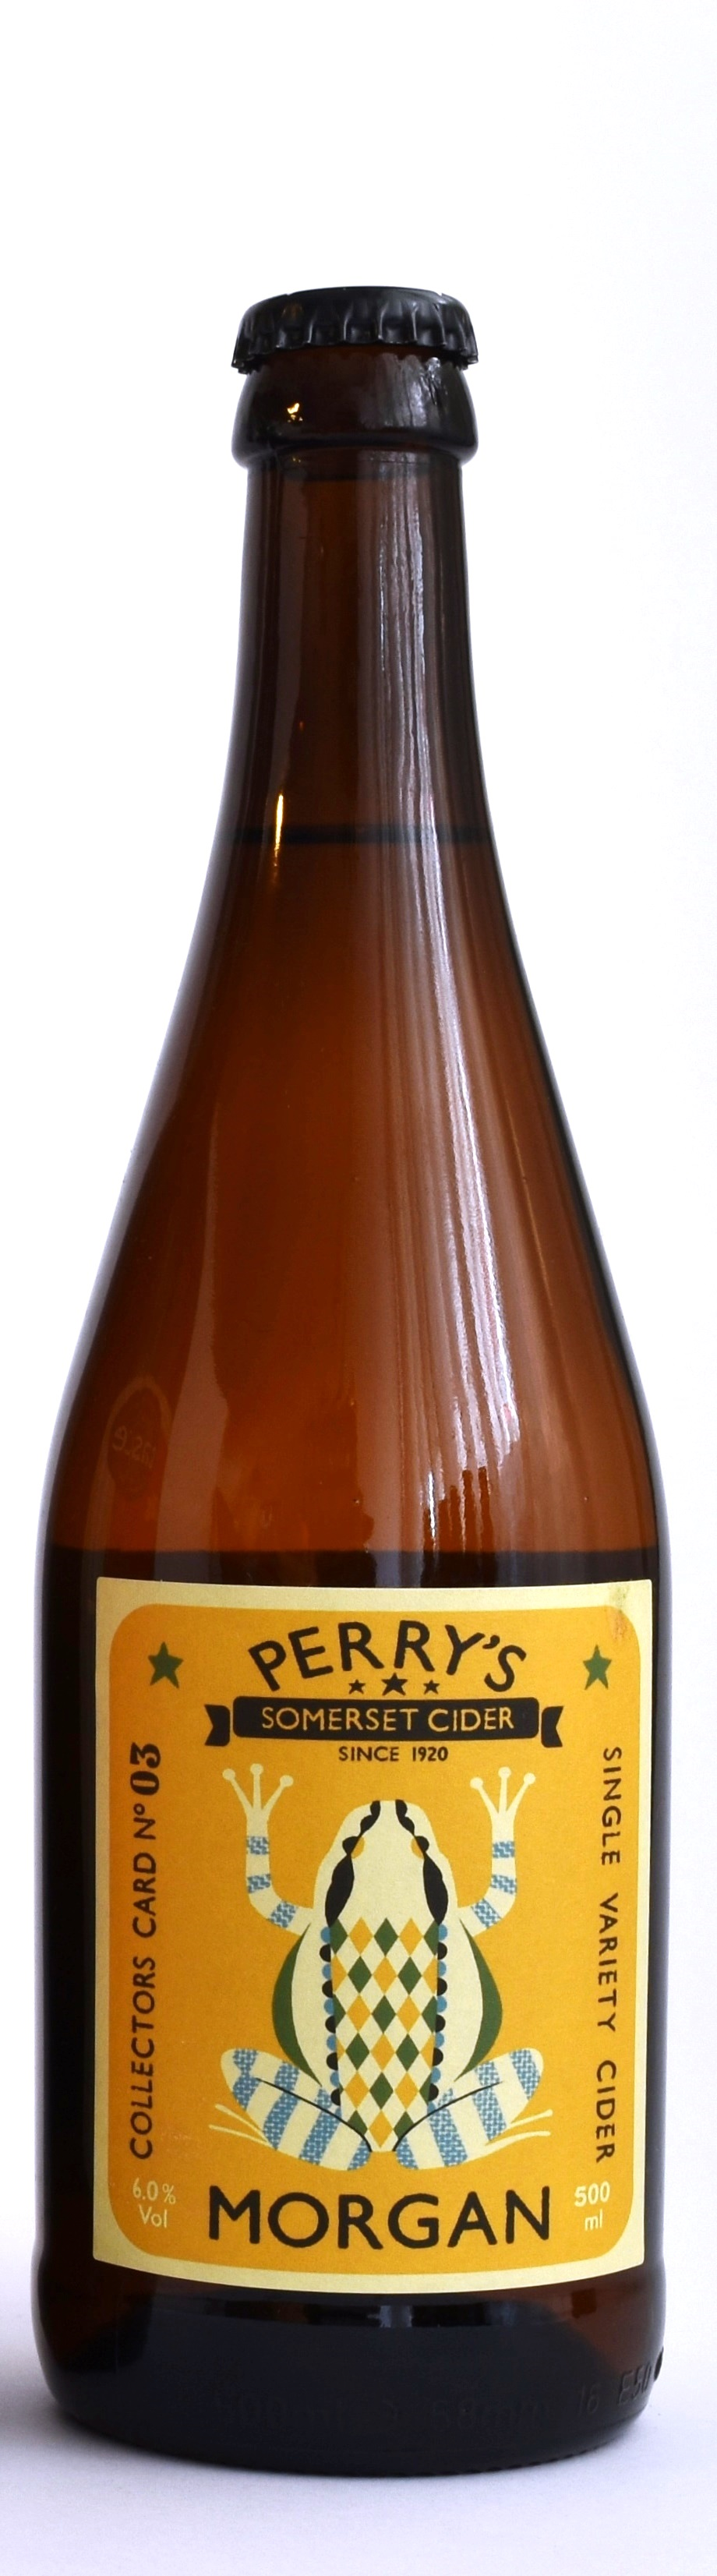 Perrys-Morgan-Sweet-500ml+.jpg